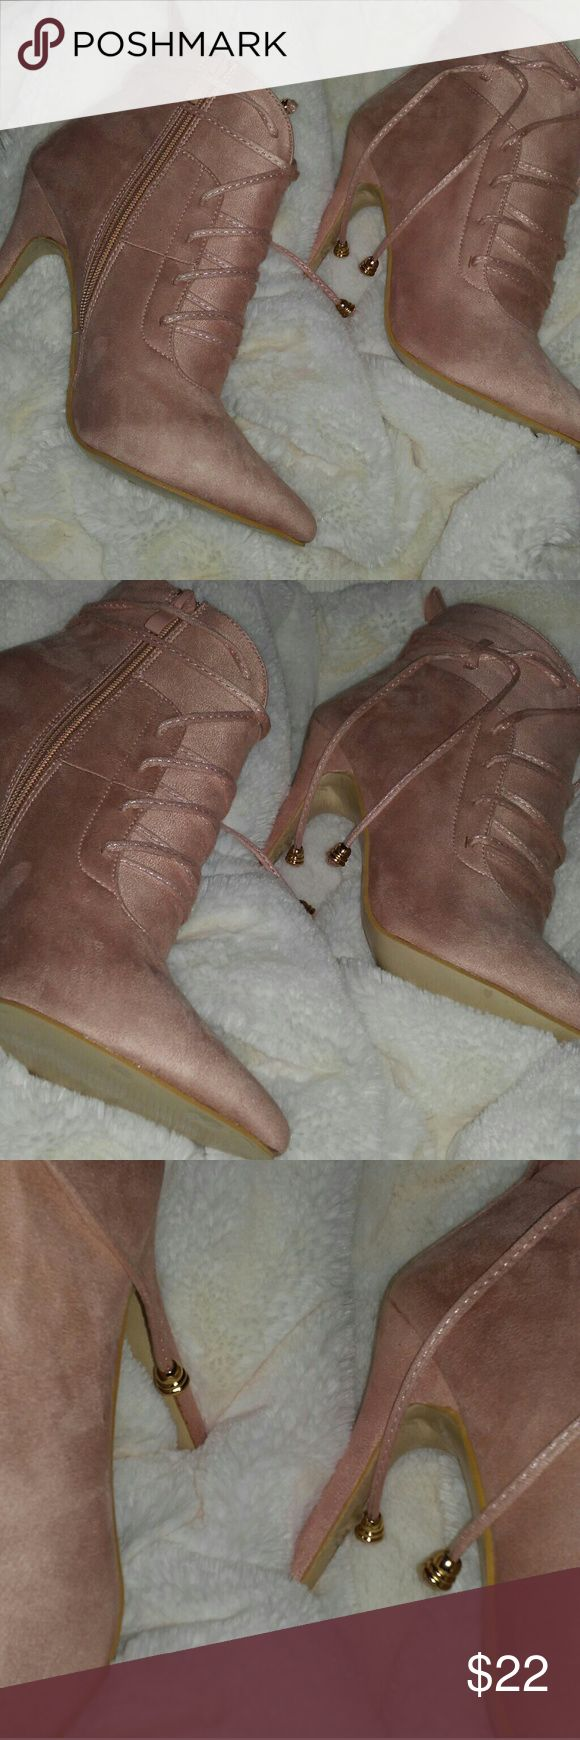 """💕✨NEW NUDE PINK HEEL SUADE LIKE  BOOTIES ✨ Nude pink booties with 3"""" heel with zip up and lace with gold detailing for tightness ,saude like material BRAND NEW never wore !!! Size 39 /8! No tag as i bought online but never wore out !!😇 Shoes"""